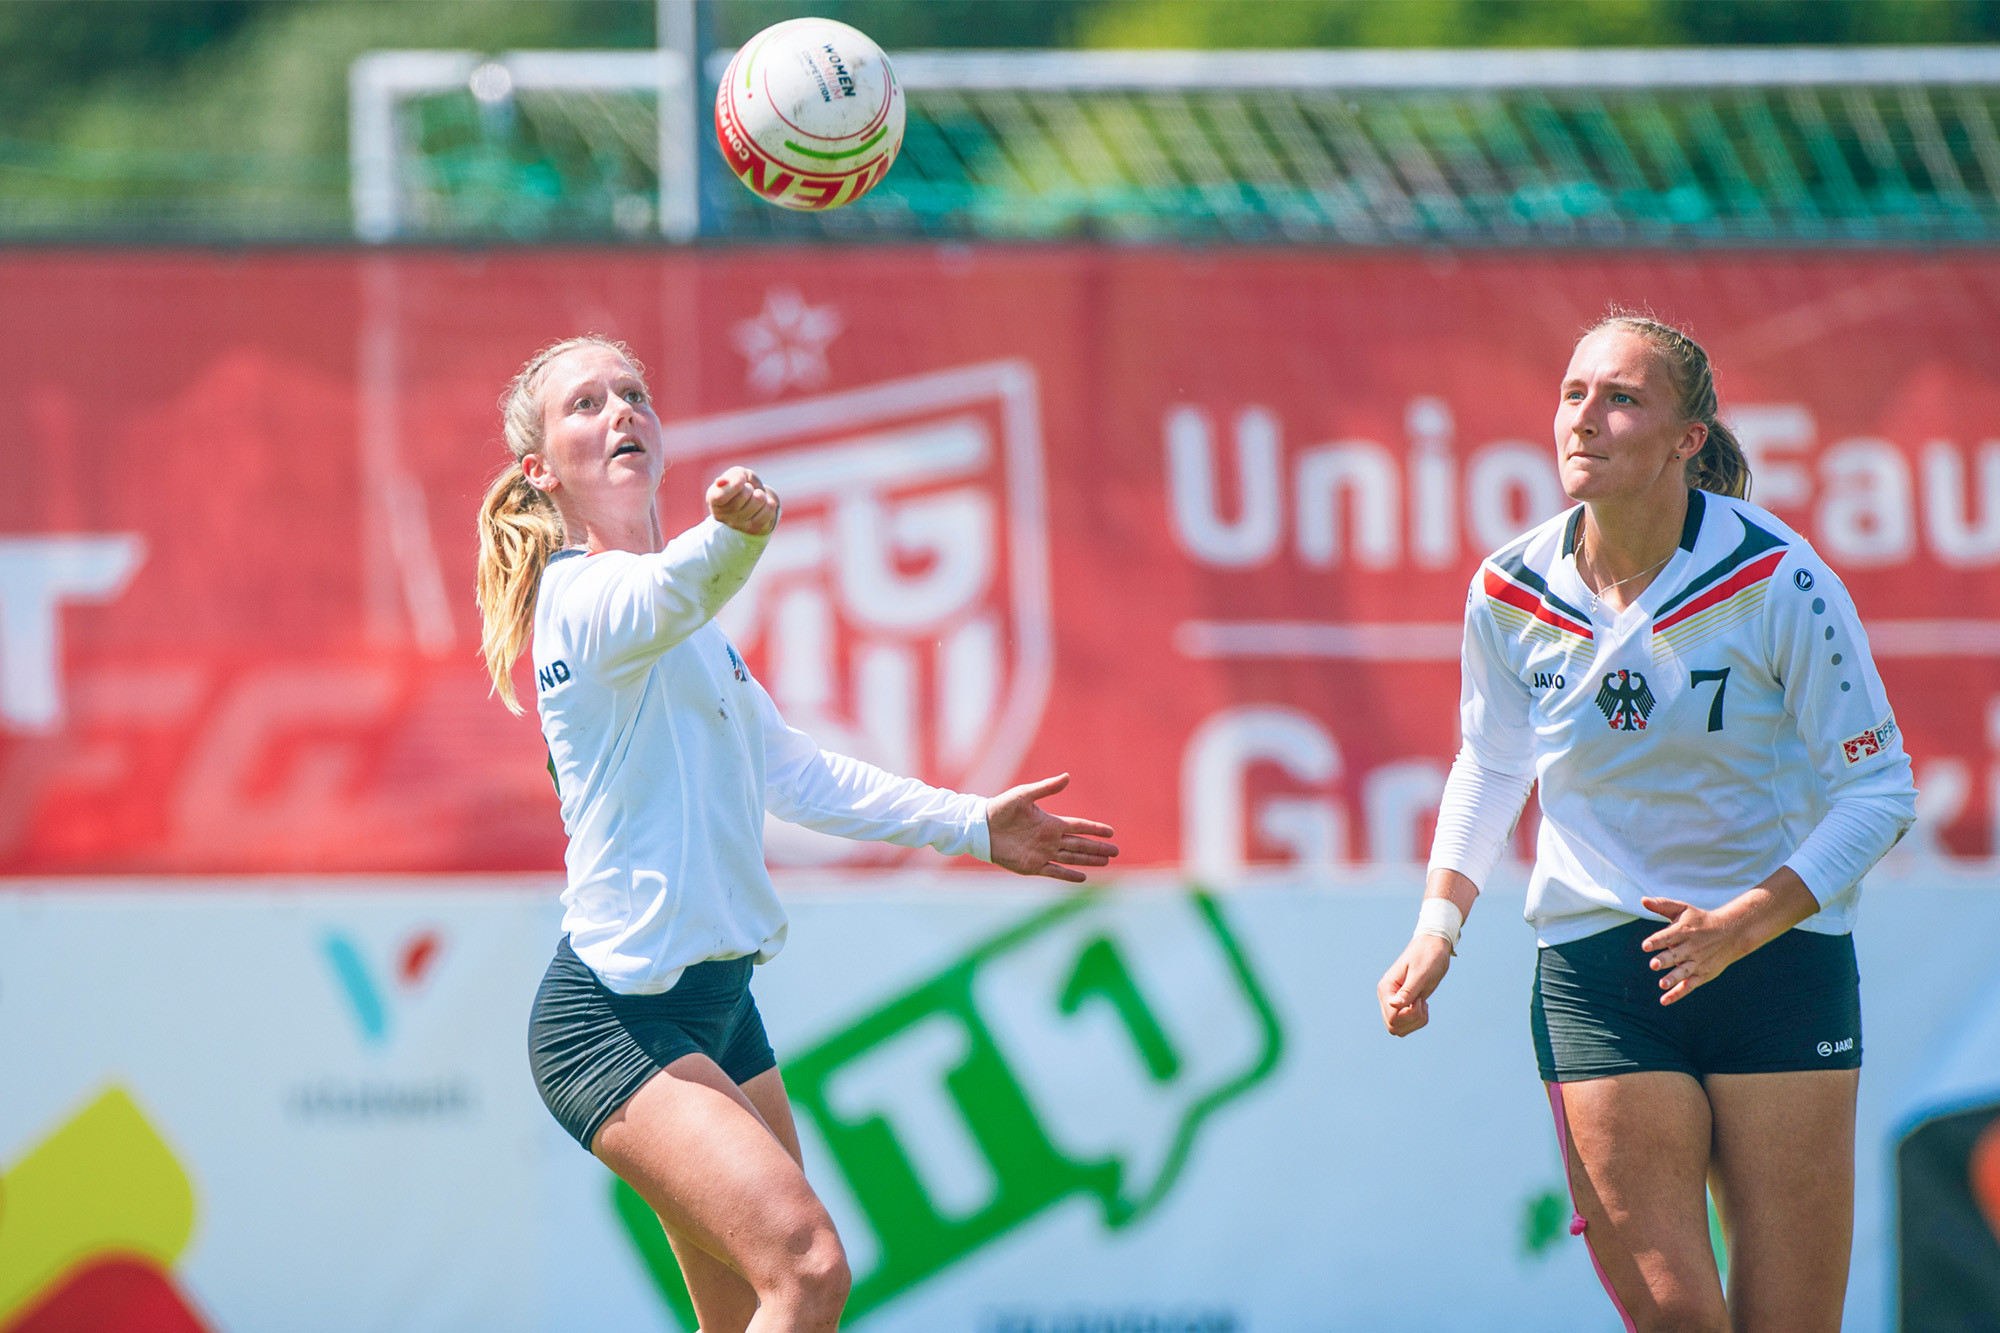 Germany are seeking a fourth Women's Fistball World Championship gold medal in a row ©IFA